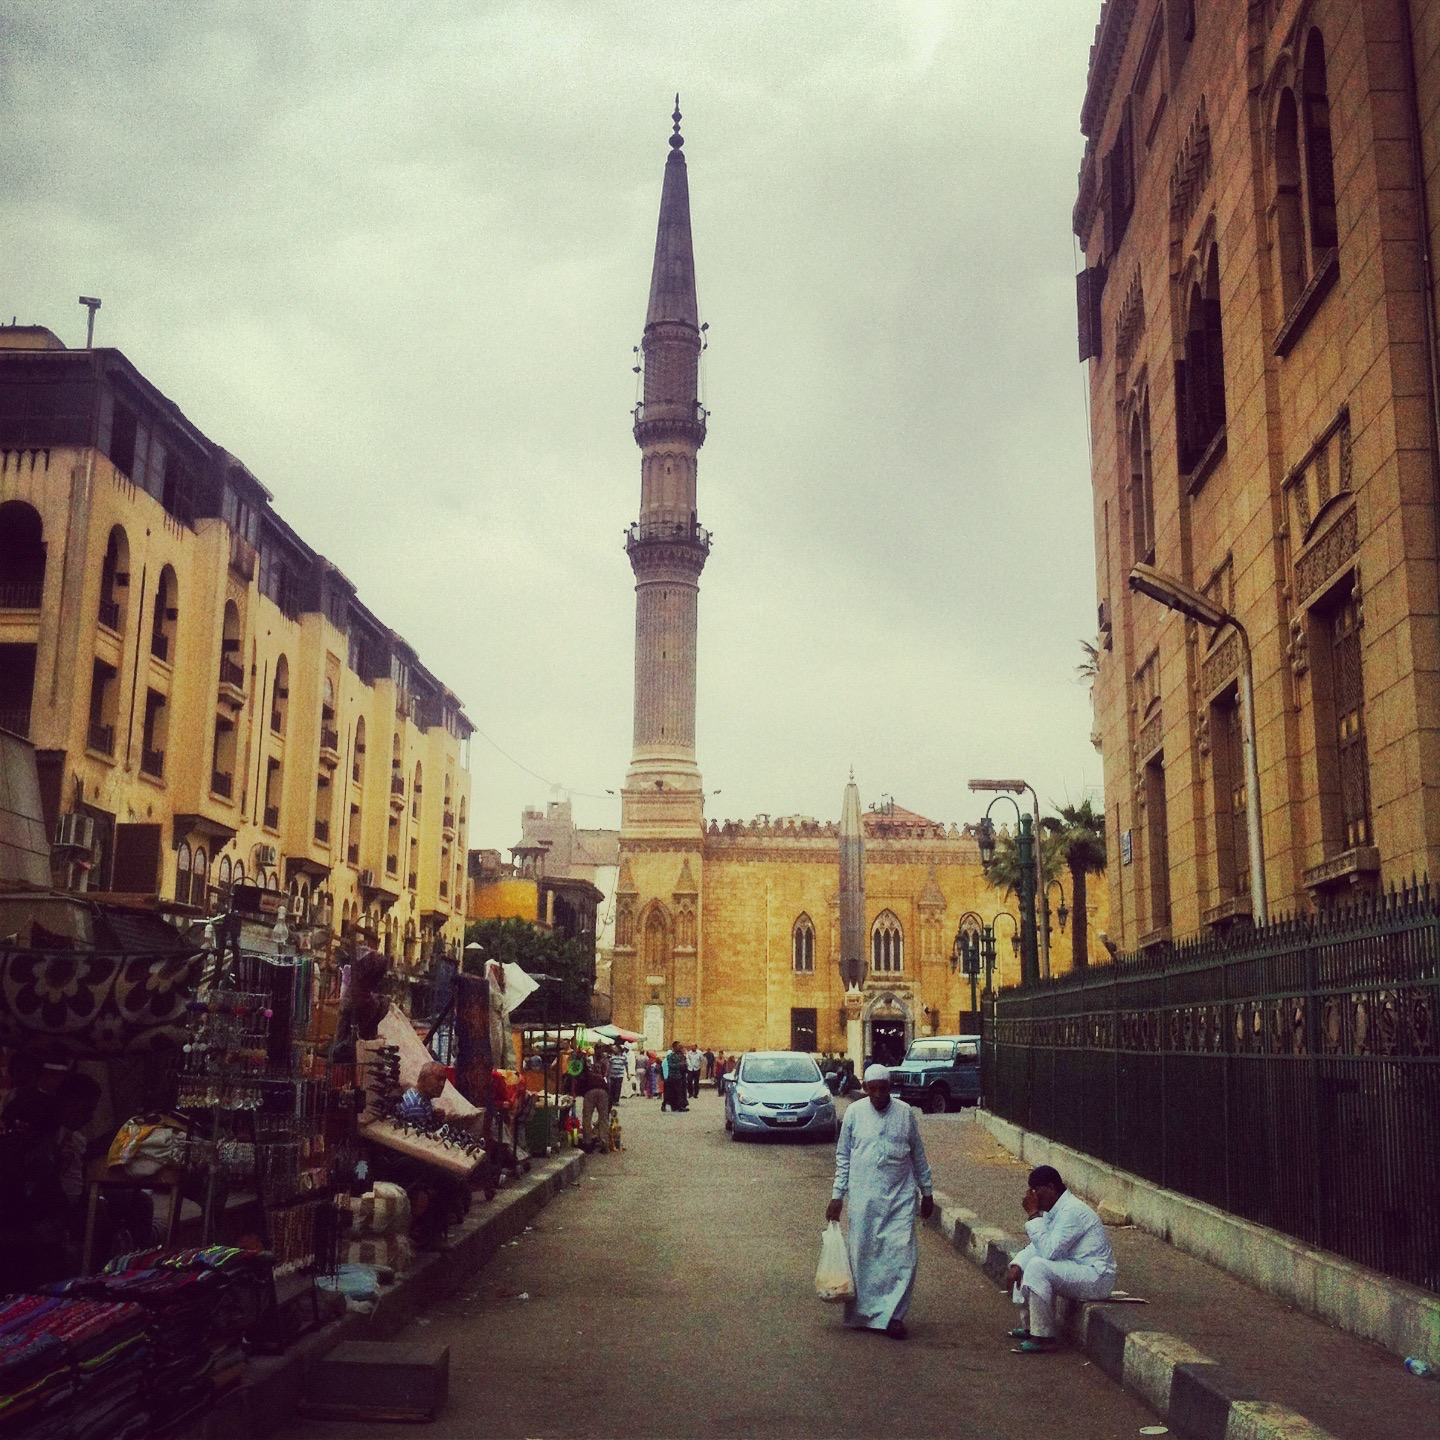 CAIRO | A man walk down from the entrance of Old Cairo. April 23, 2014.